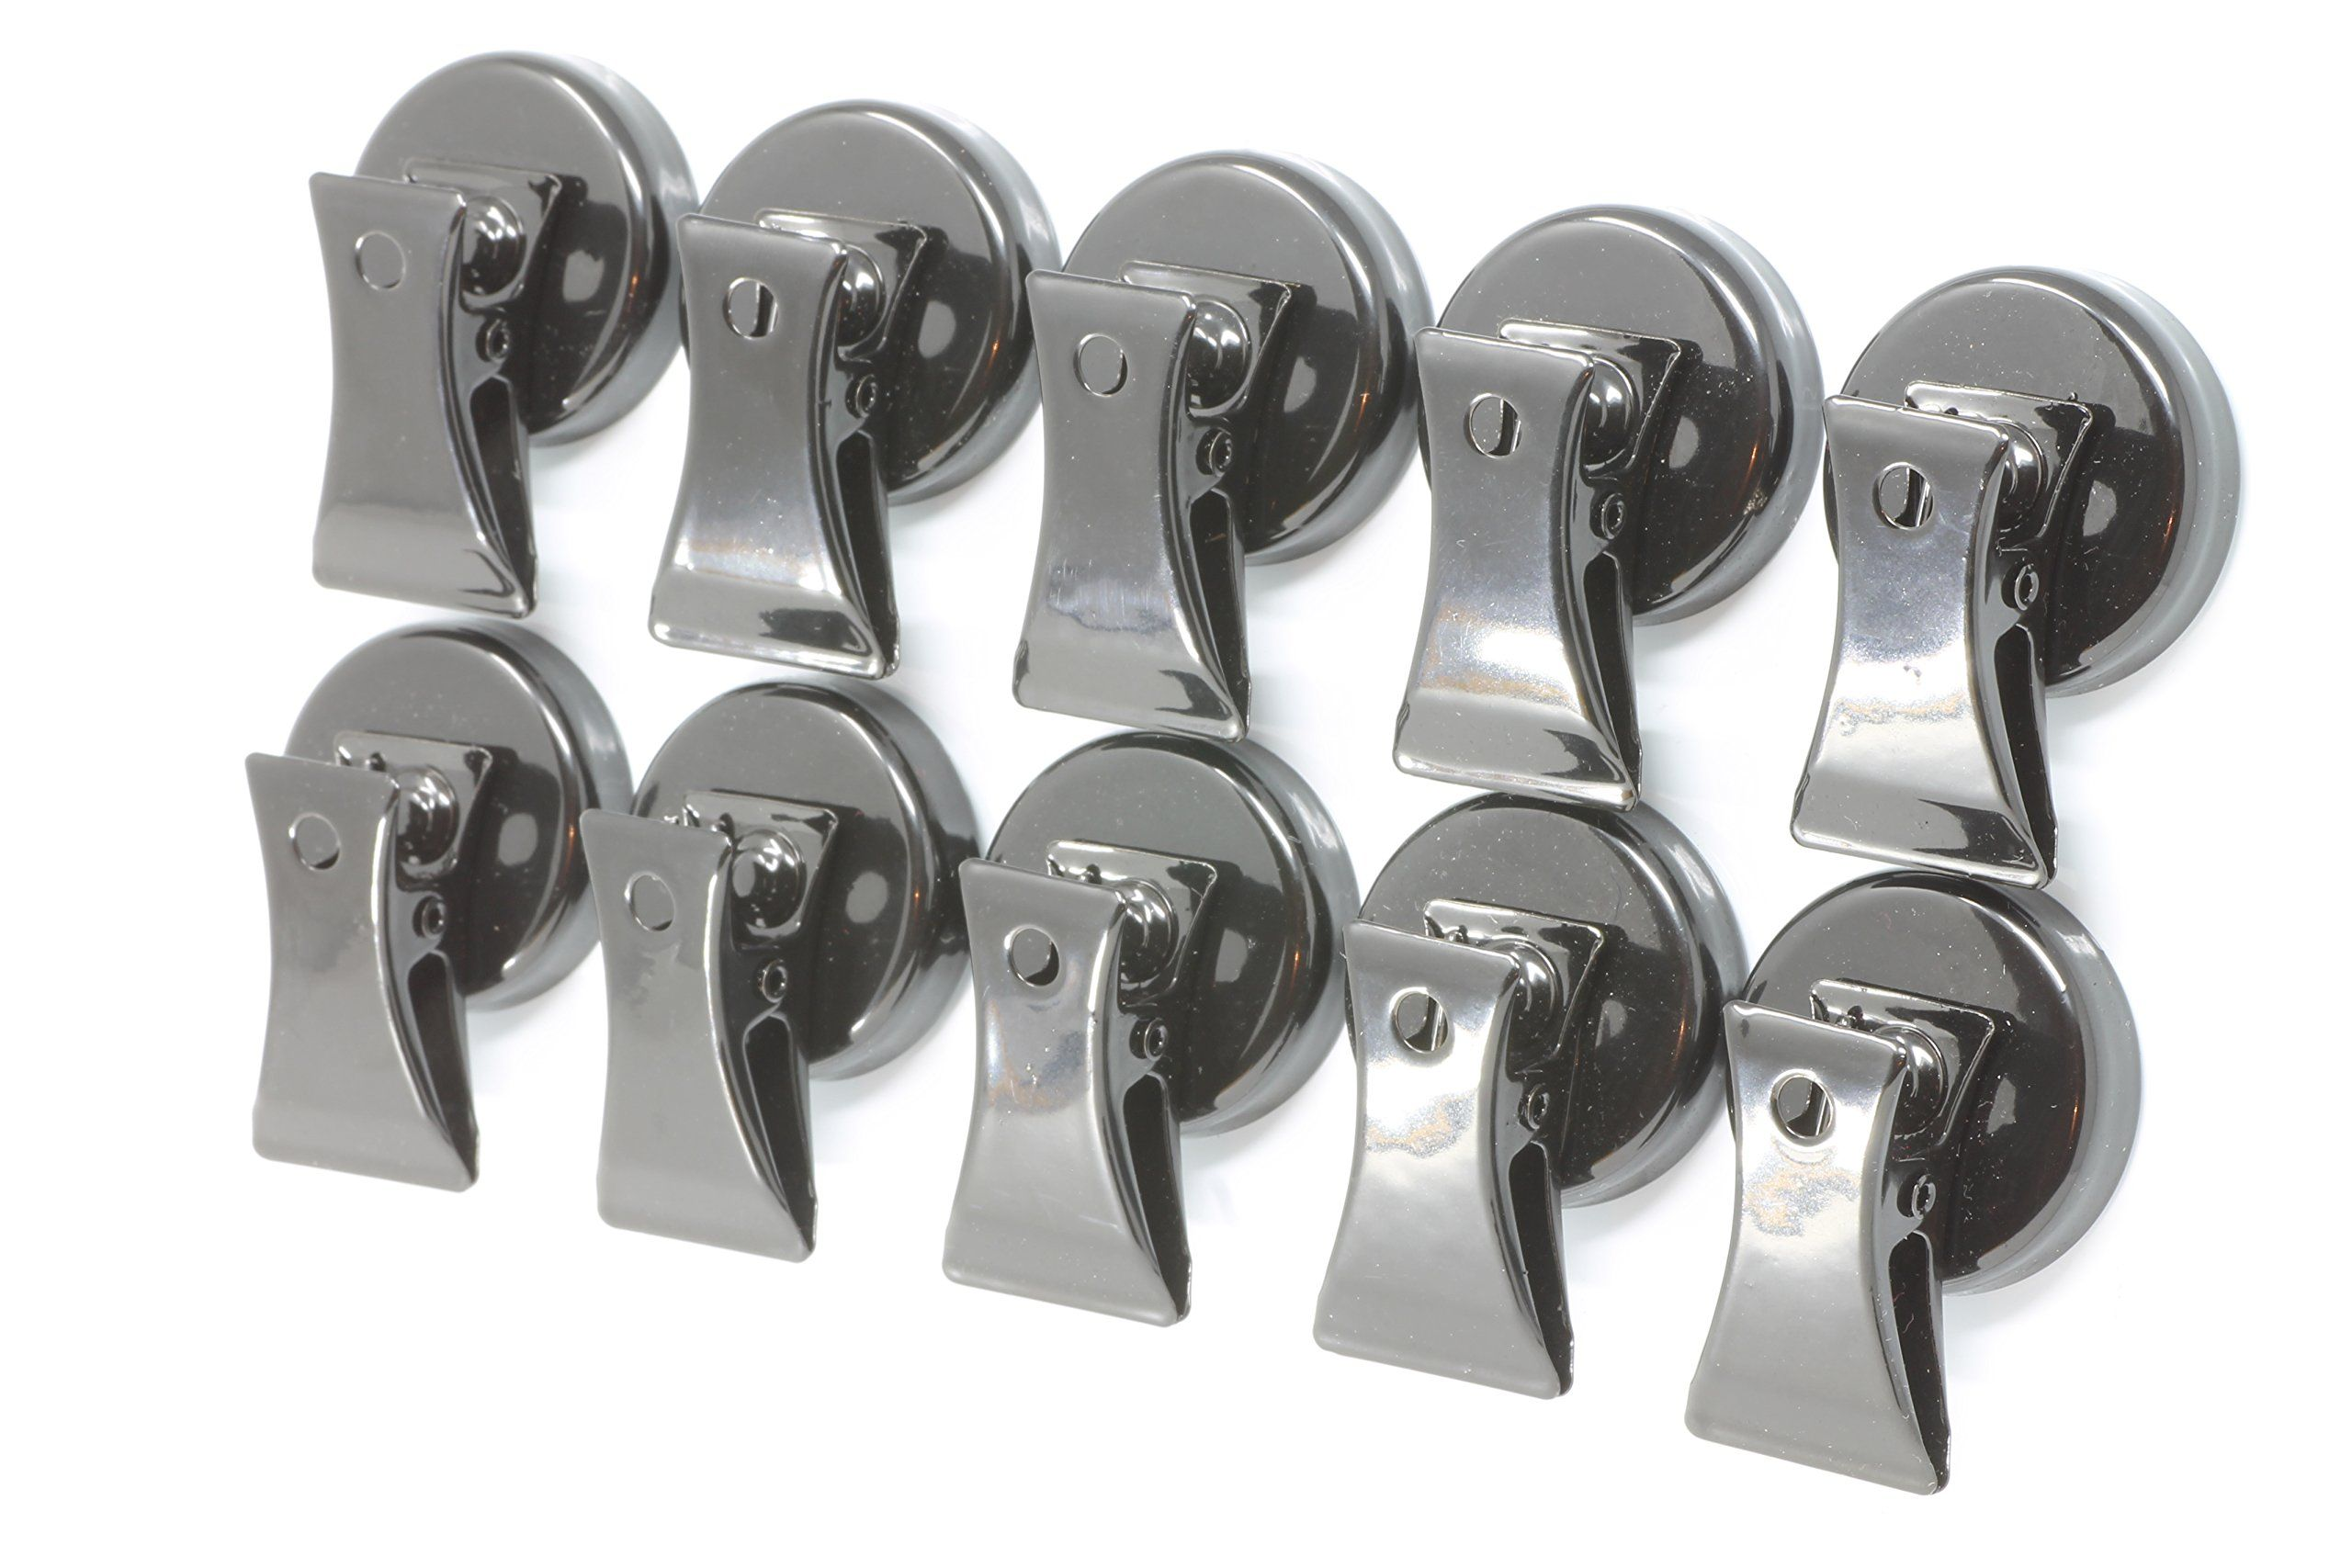 Suction Cup Clips For Stainless Steel Fridge Stainless Steel Fridge Refrigerator Magnets Metal